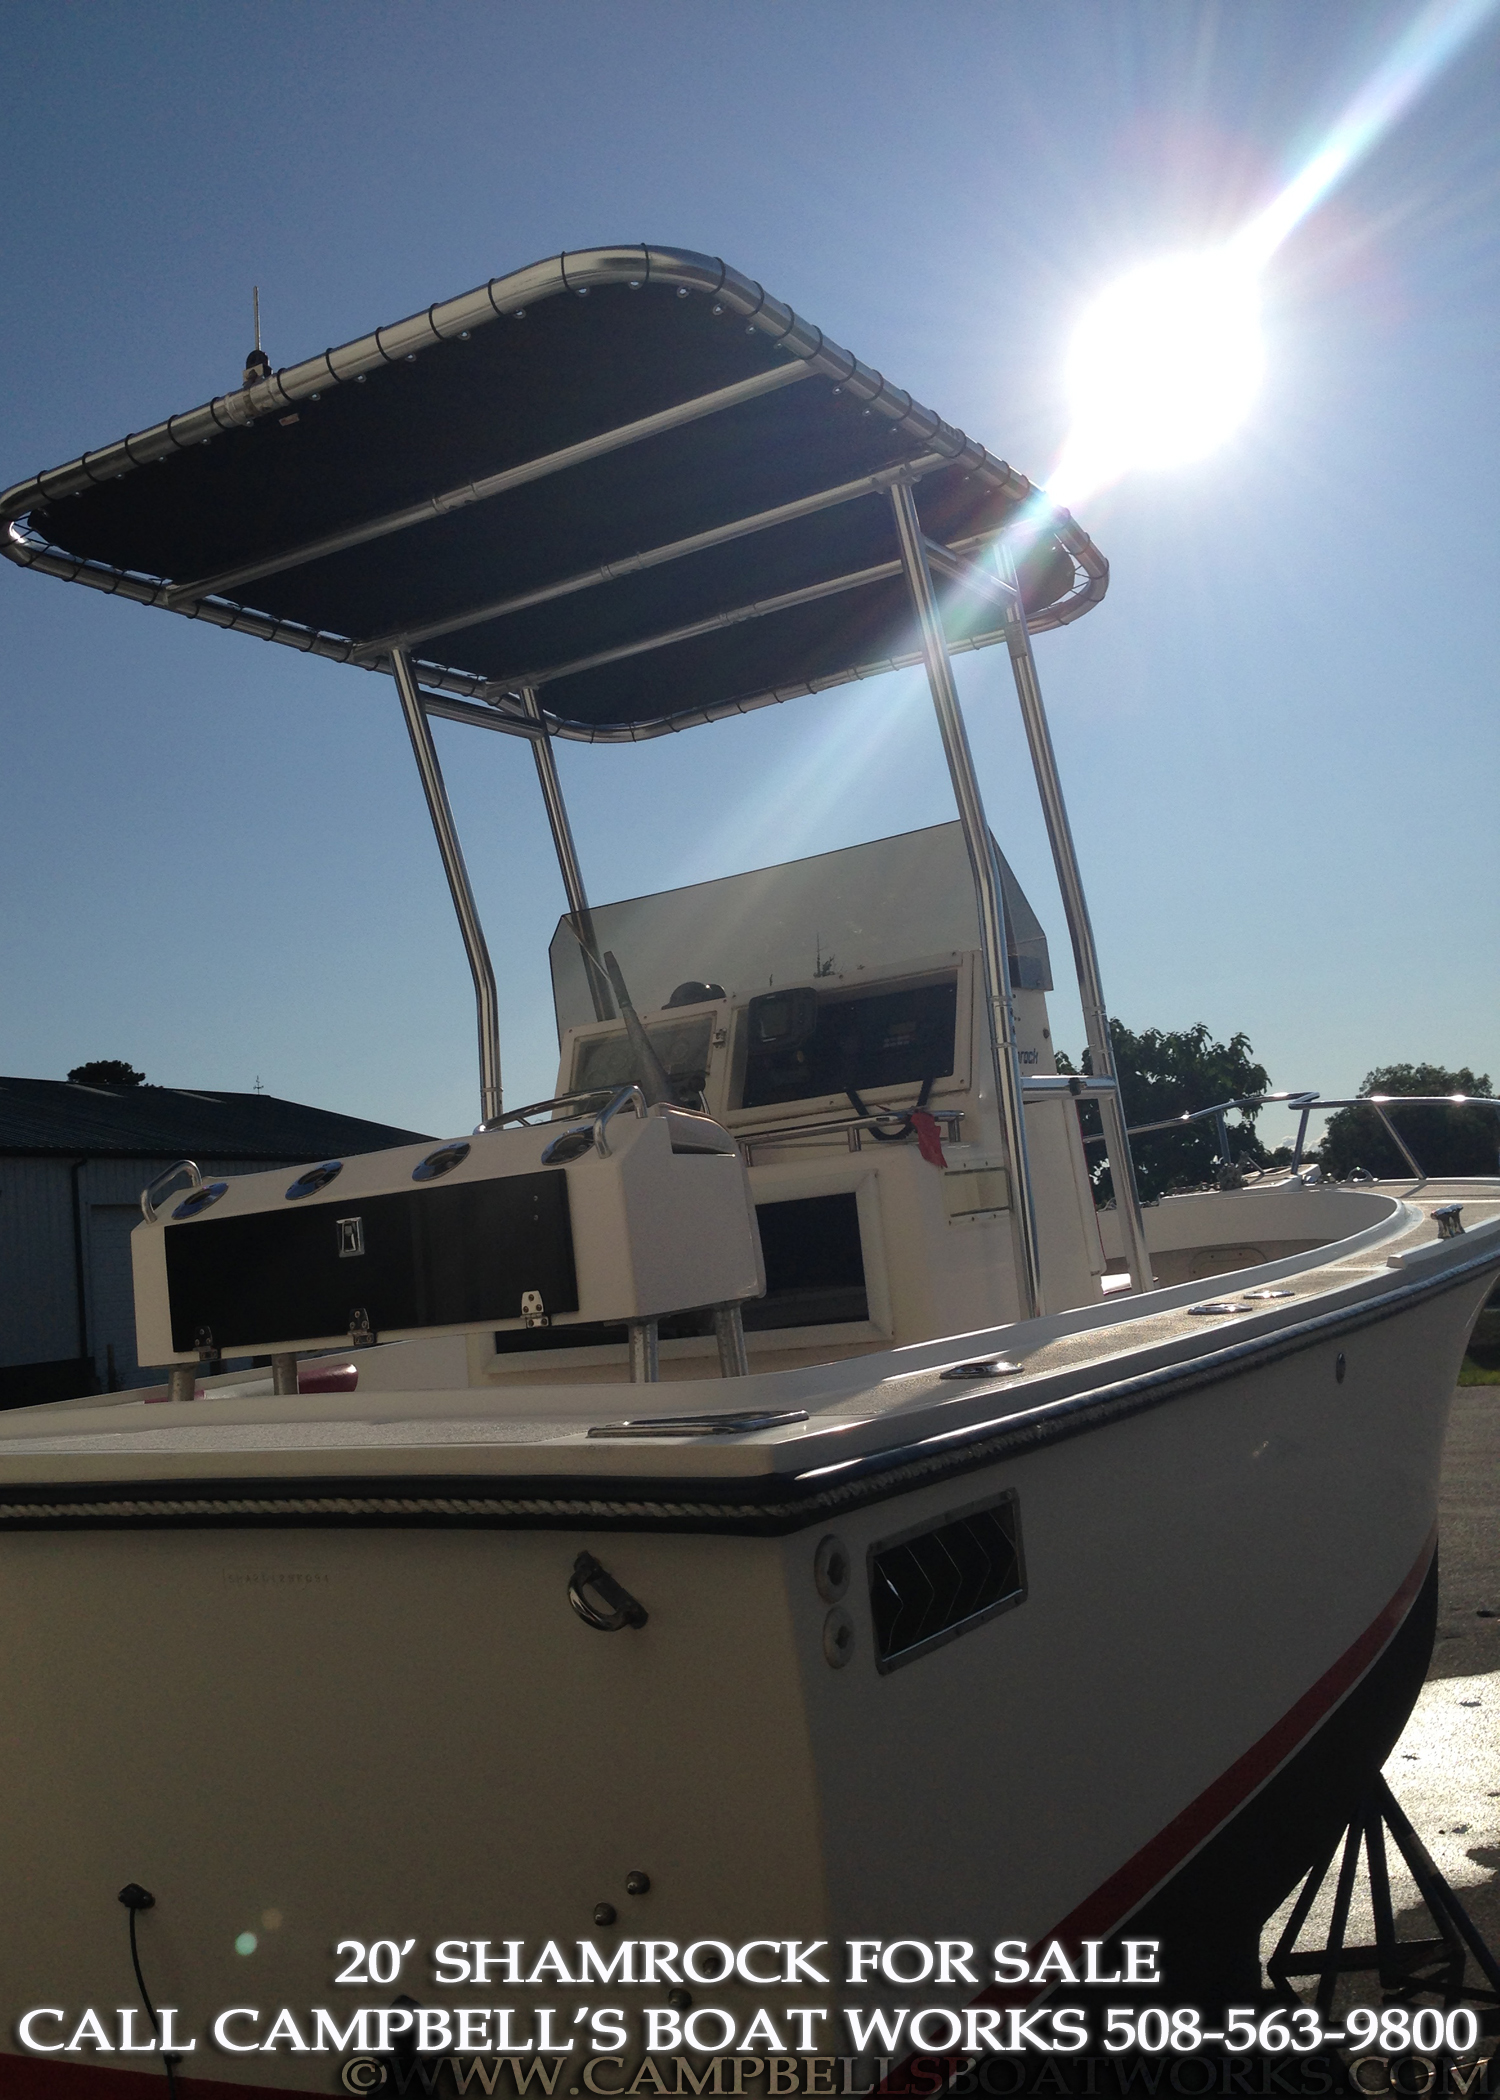 shamrock-straight-inboard-center-console-boat-for-sale.jpg